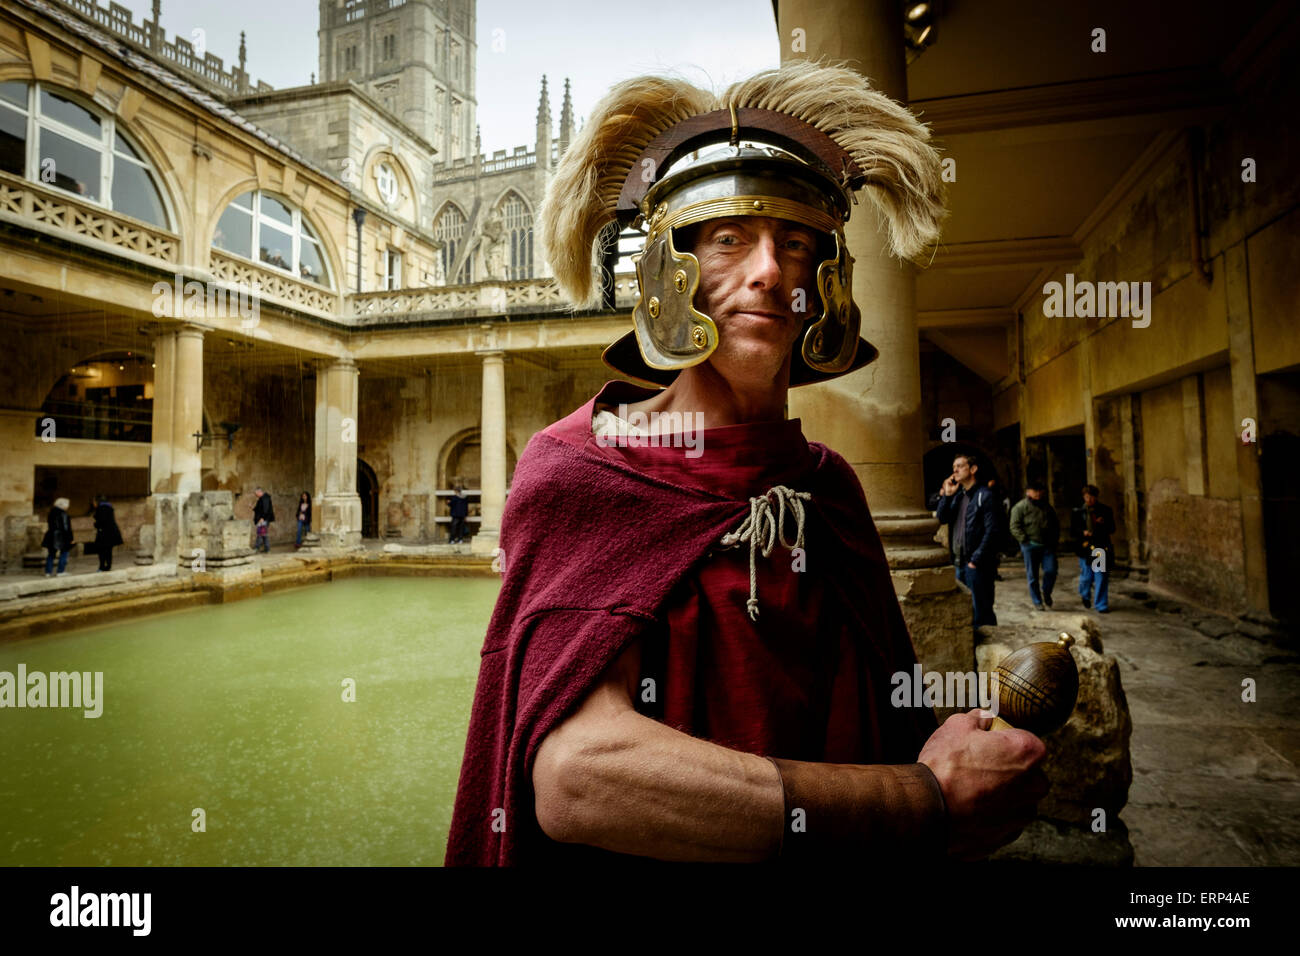 In the Roman Baths at Bath, UK this costumed man acts as a guide and photo prop for those wishing to pose with a - Stock Image